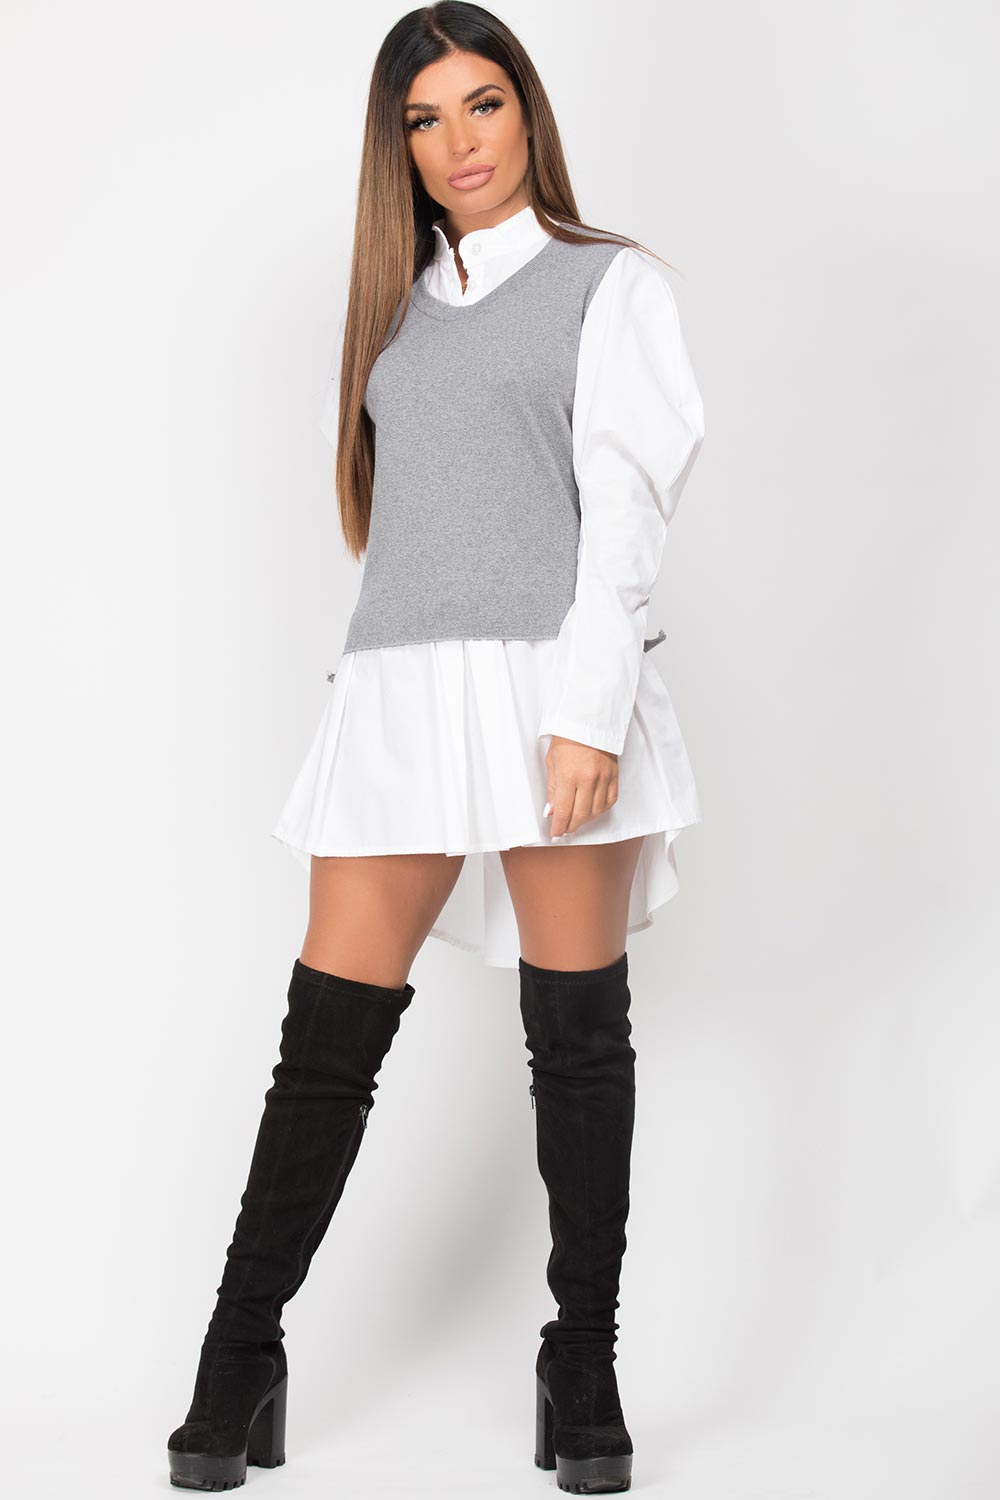 grey jumper shirt womens